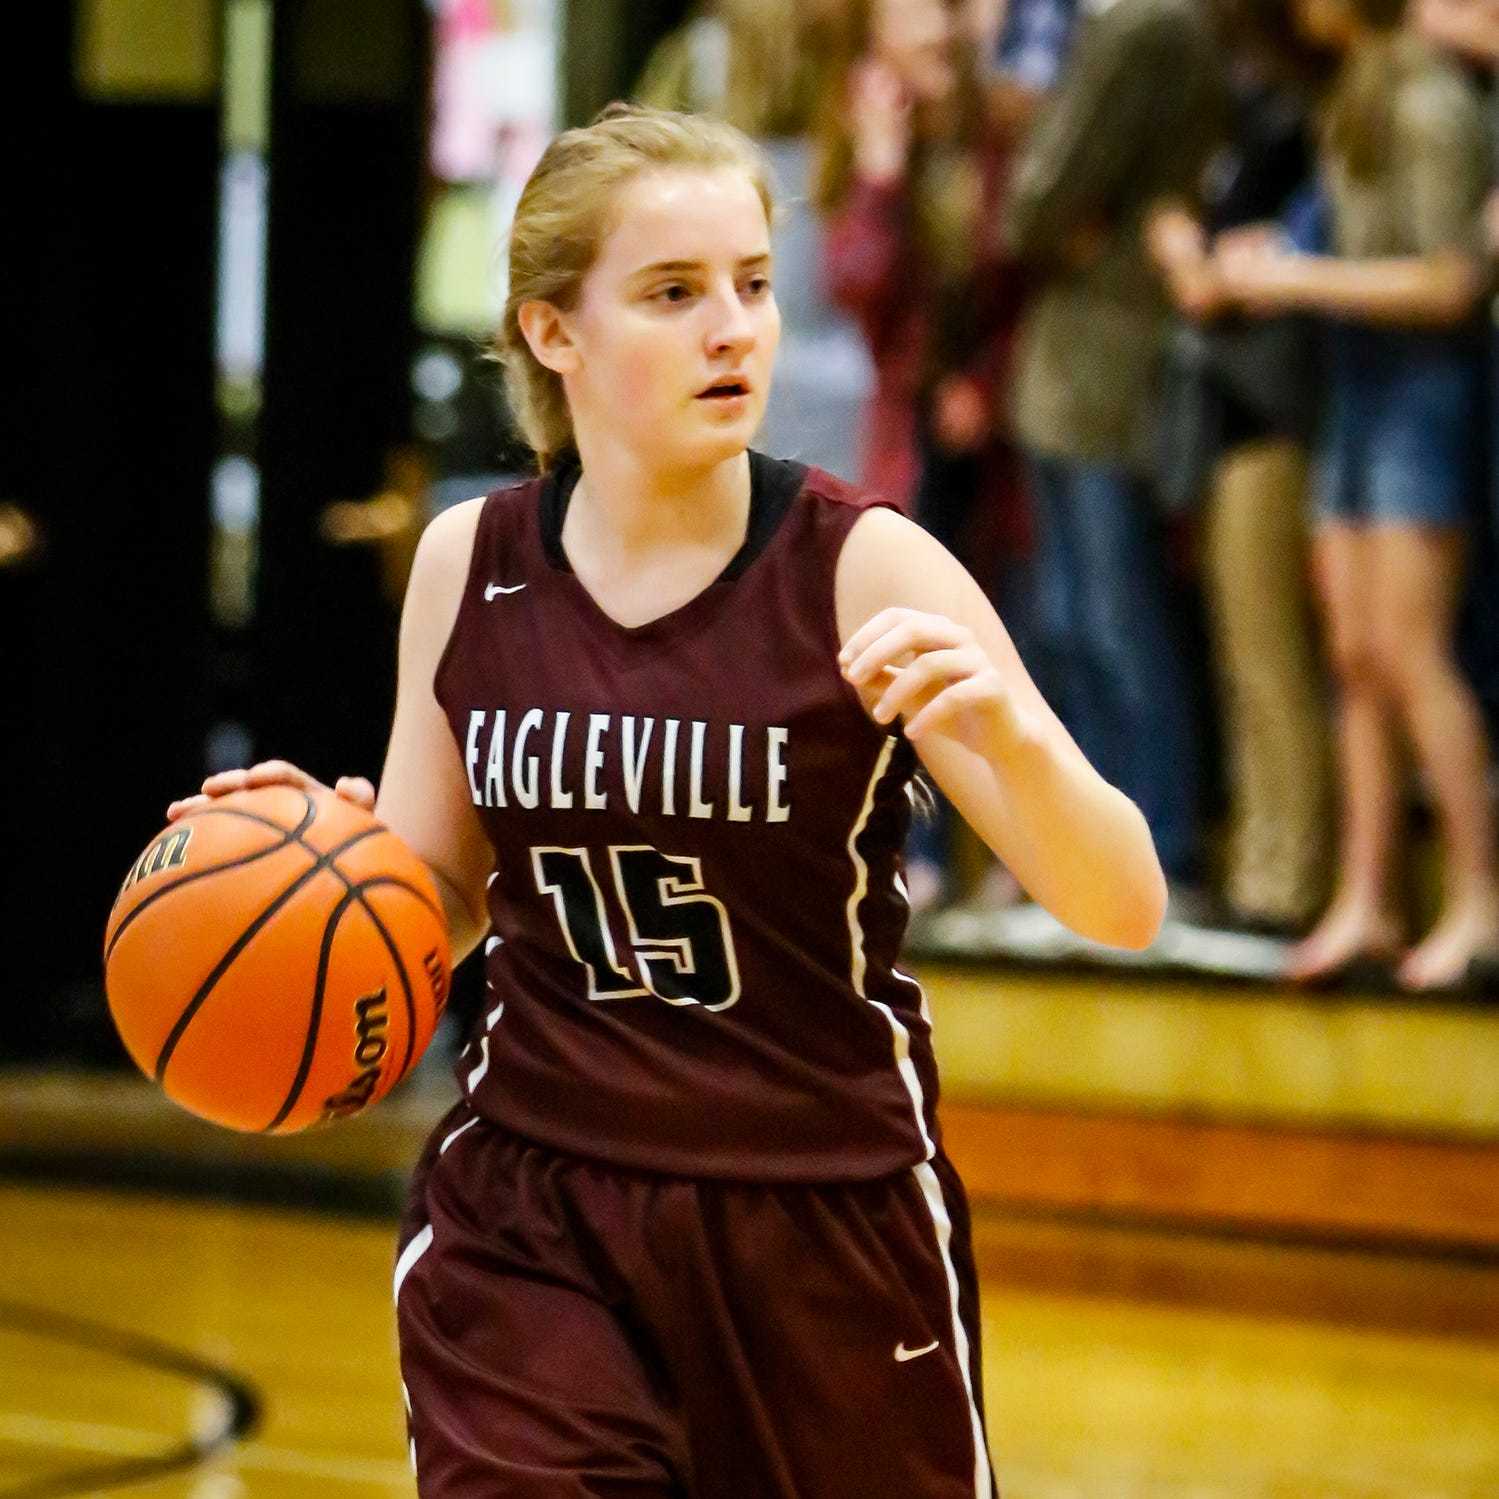 Eagleville's Makayla Moates voted area girls athlete of the week for Jan. 7-12